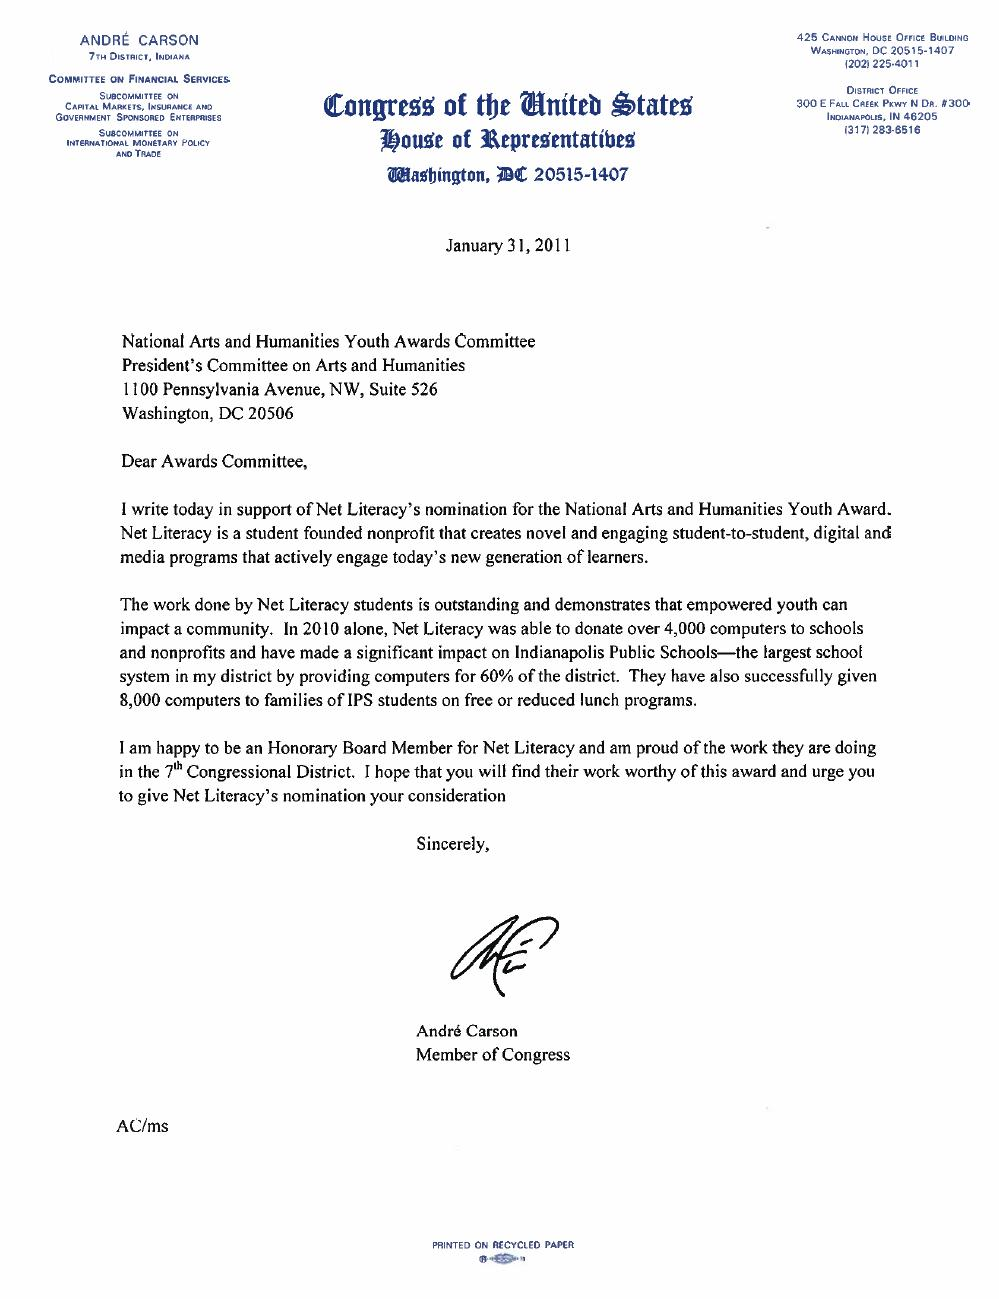 Congressman Carson's Letter of Support for Net Literacy